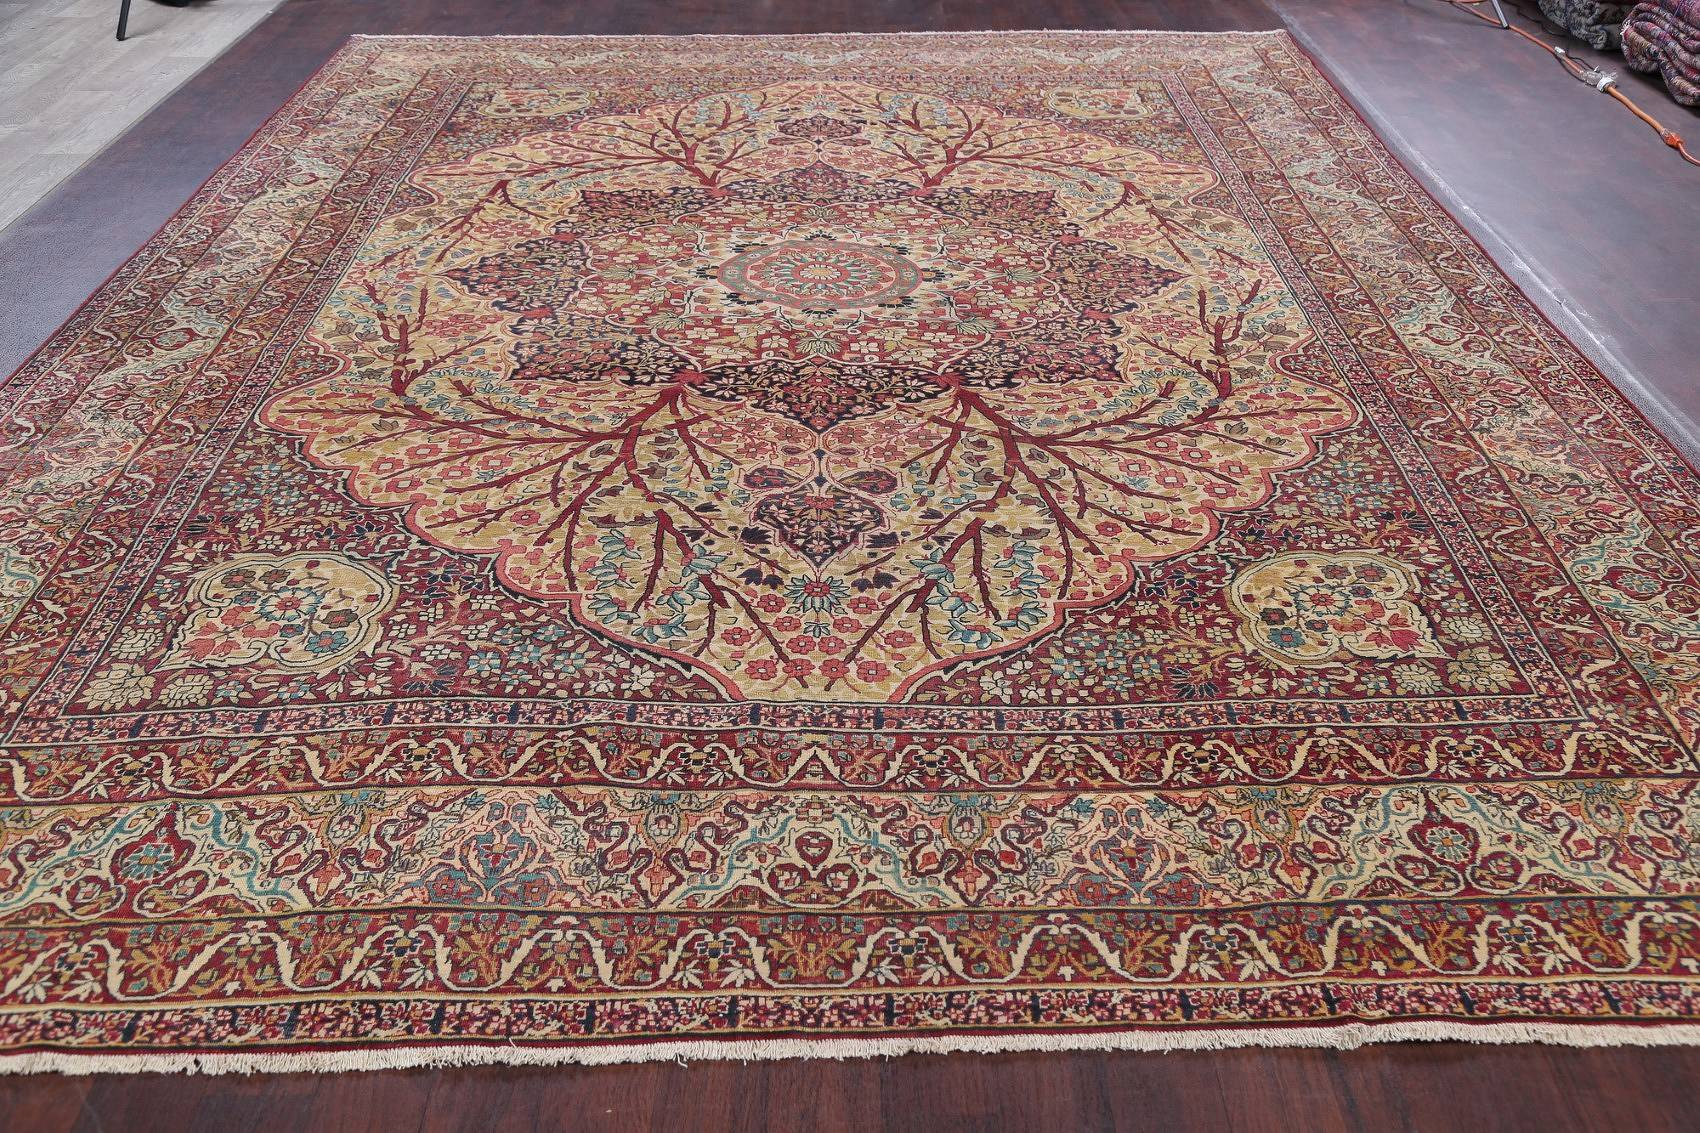 Pre-1900 Antique Floral Kerman Ravar Persian Hand-Knotted Area Rug 11x14